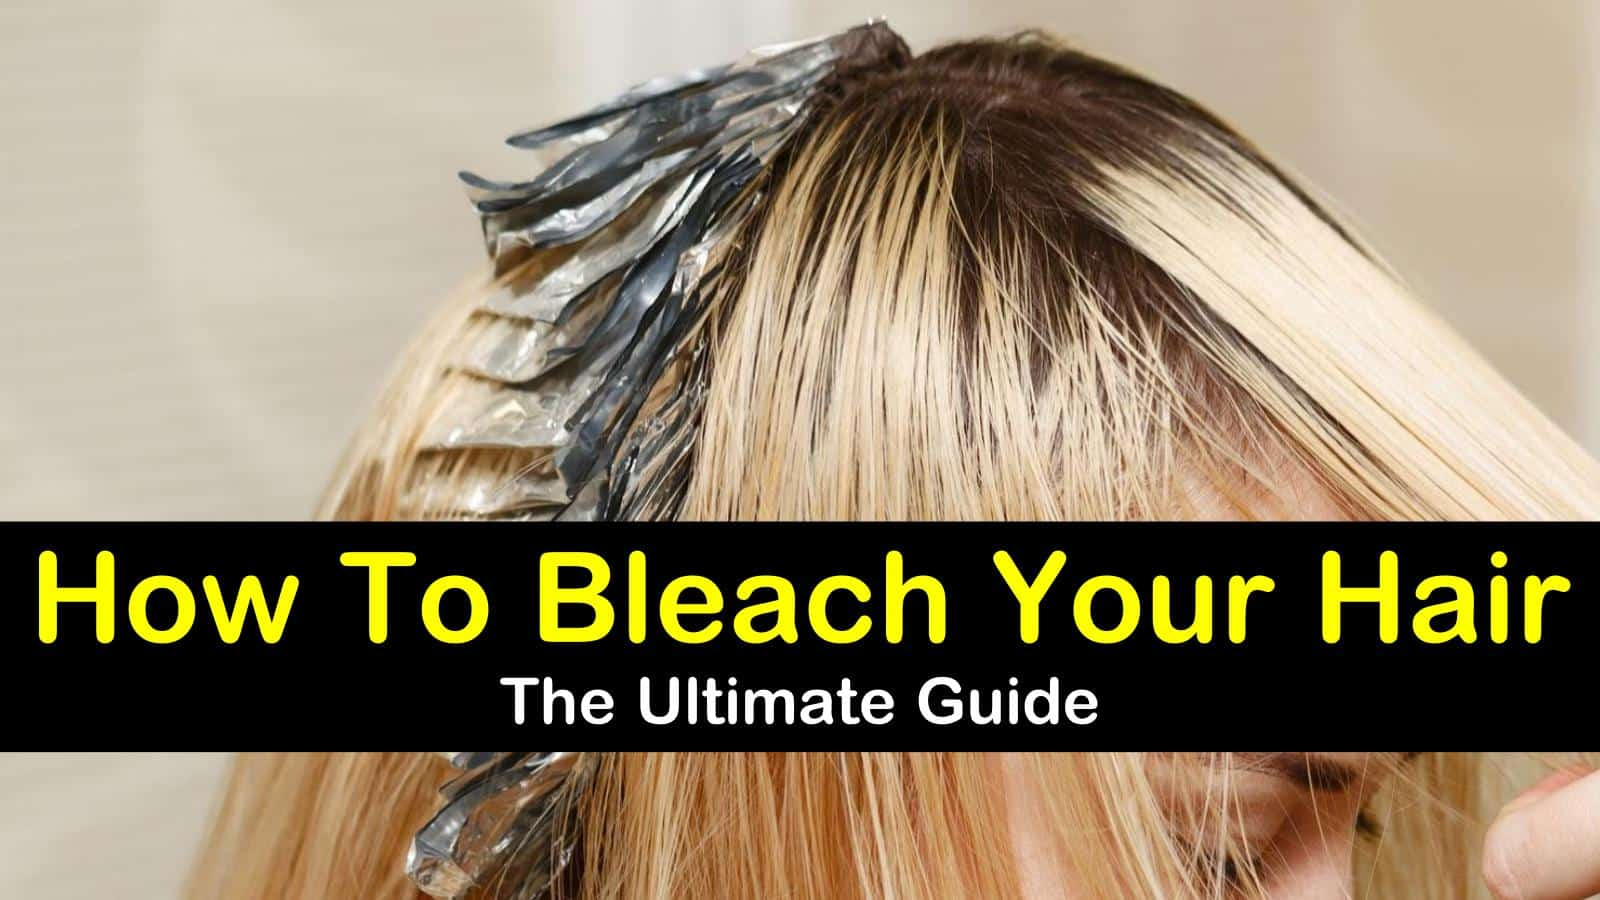 How To Bleach Your Hair - The Ultimate Guide titleimg1